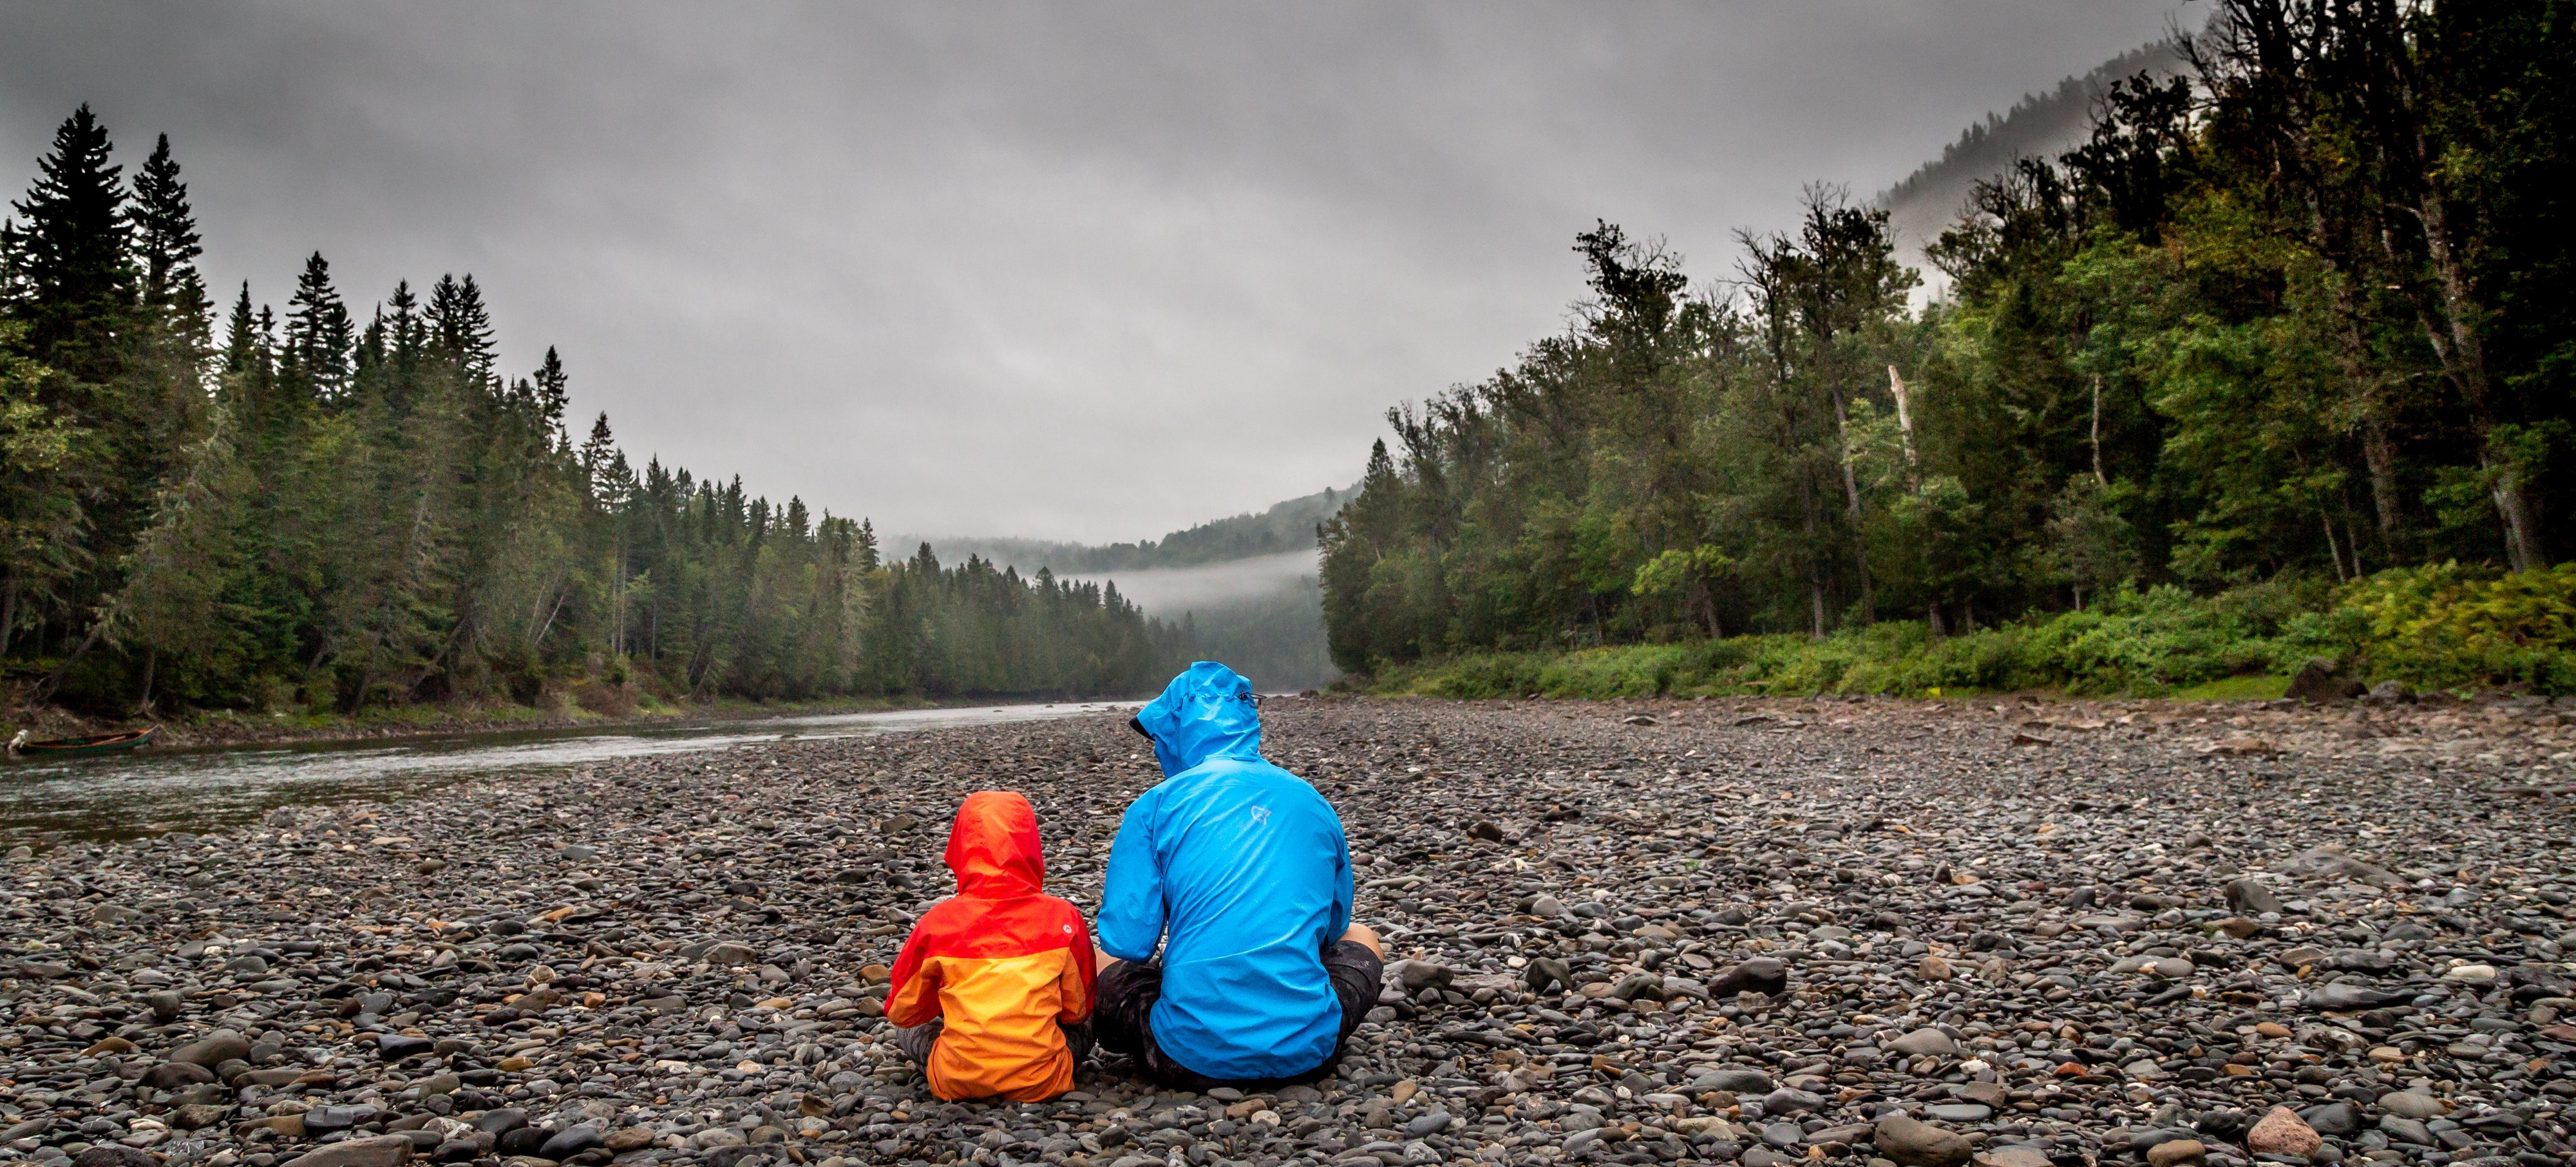 A father and child sitting on an expanse of pebbles, back to the camera. In the distance is a river and trees on both banks.